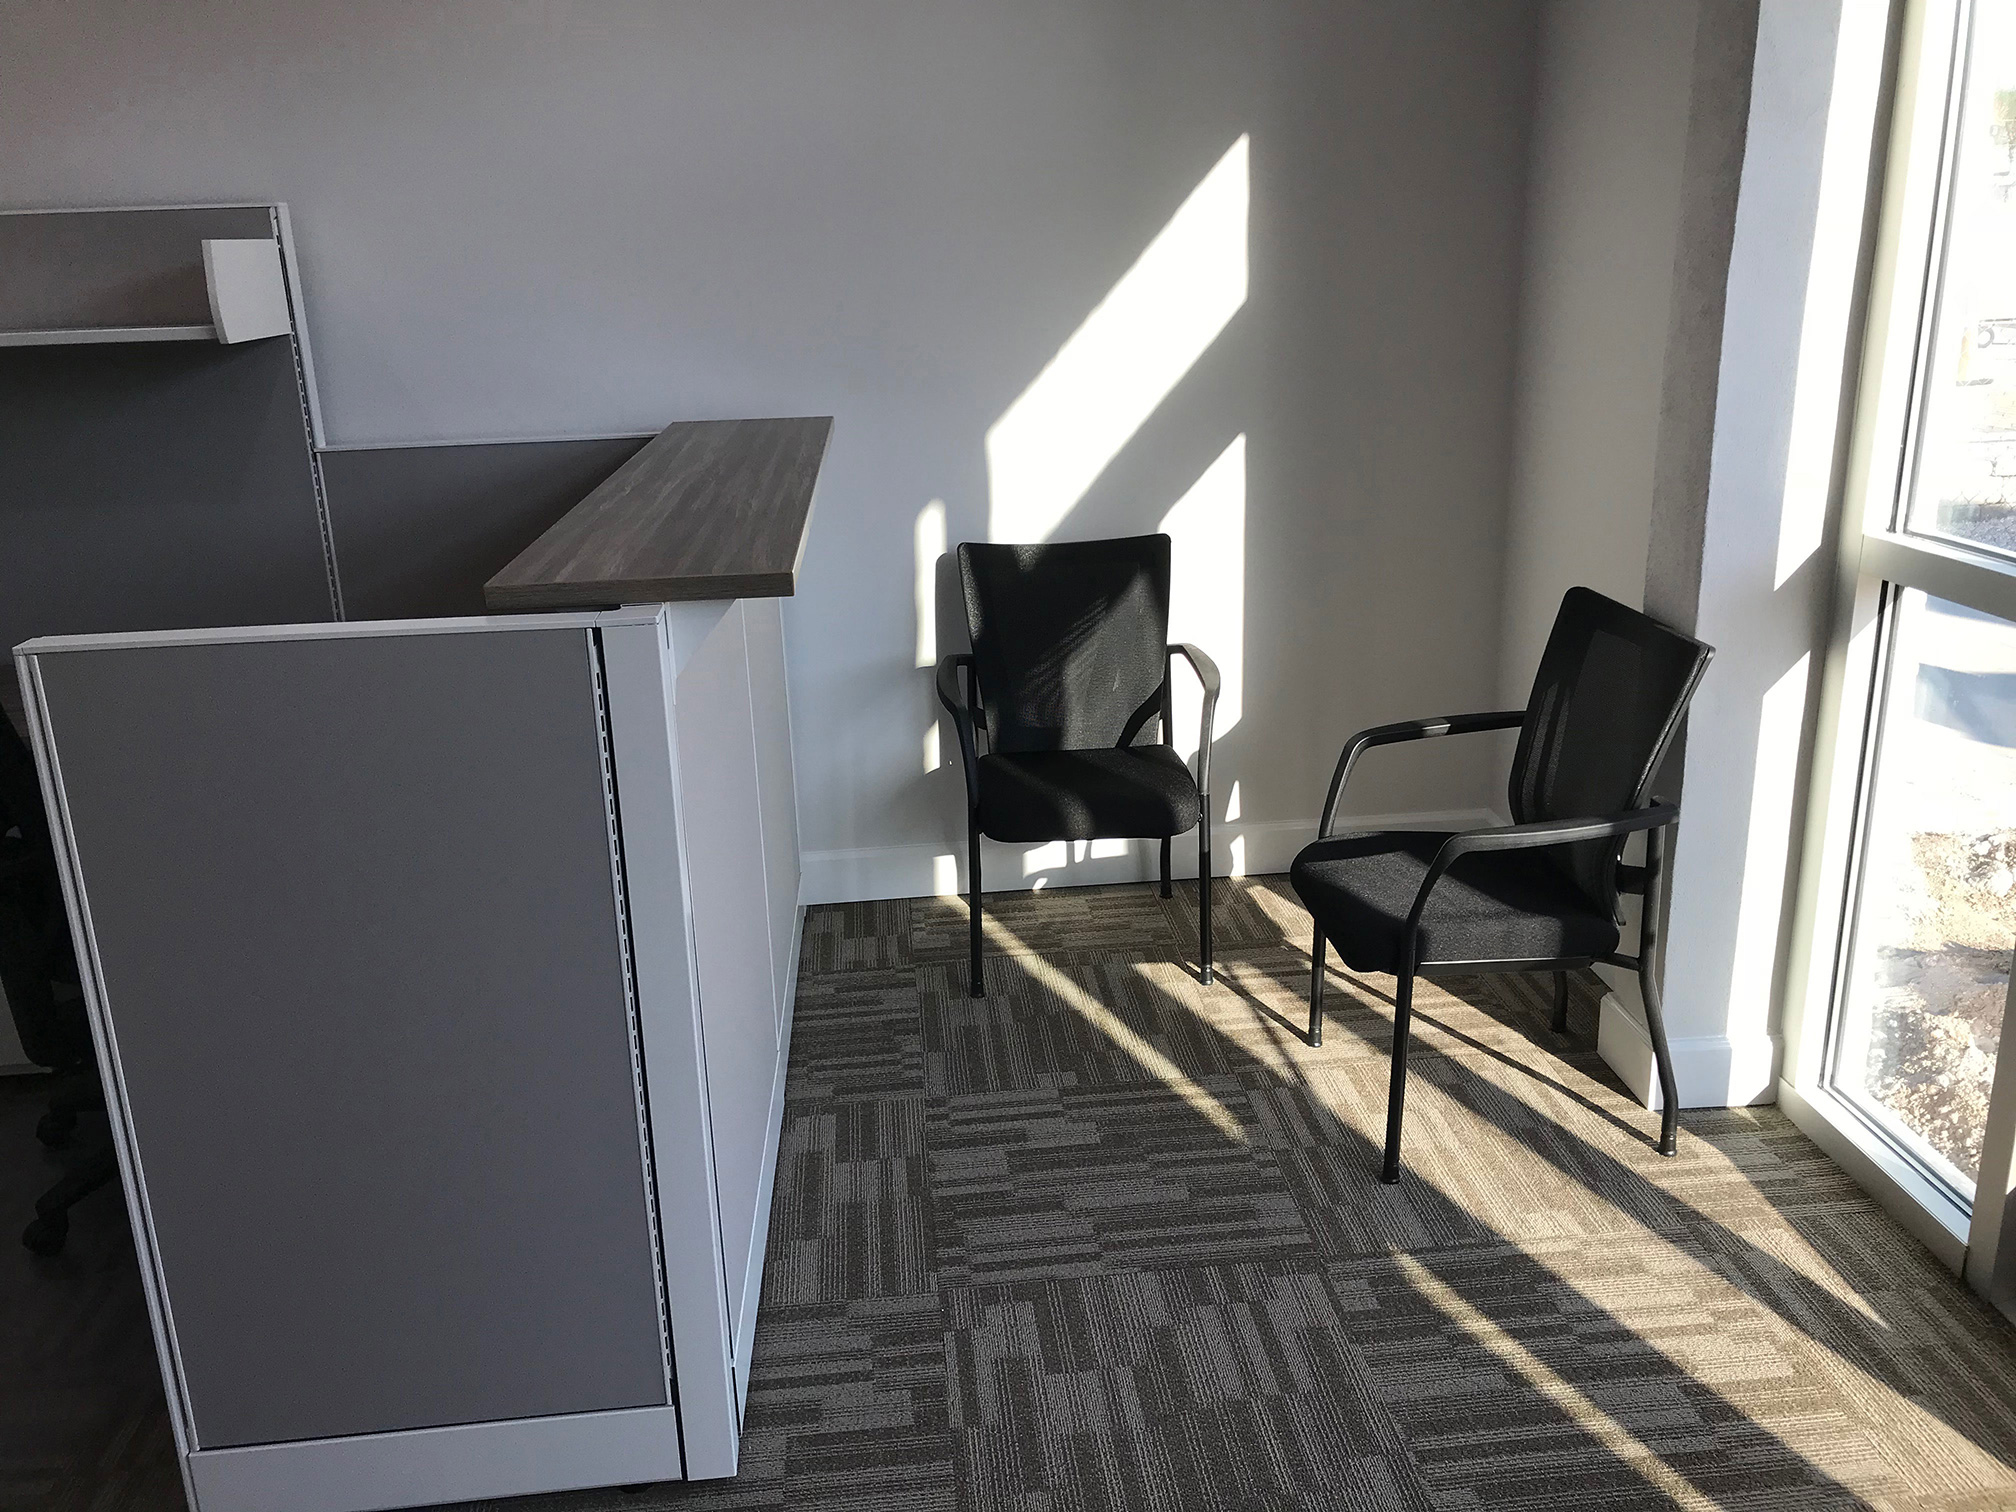 office-cubicles-for-sale-in-pembroke-pines-florida-3.jpg